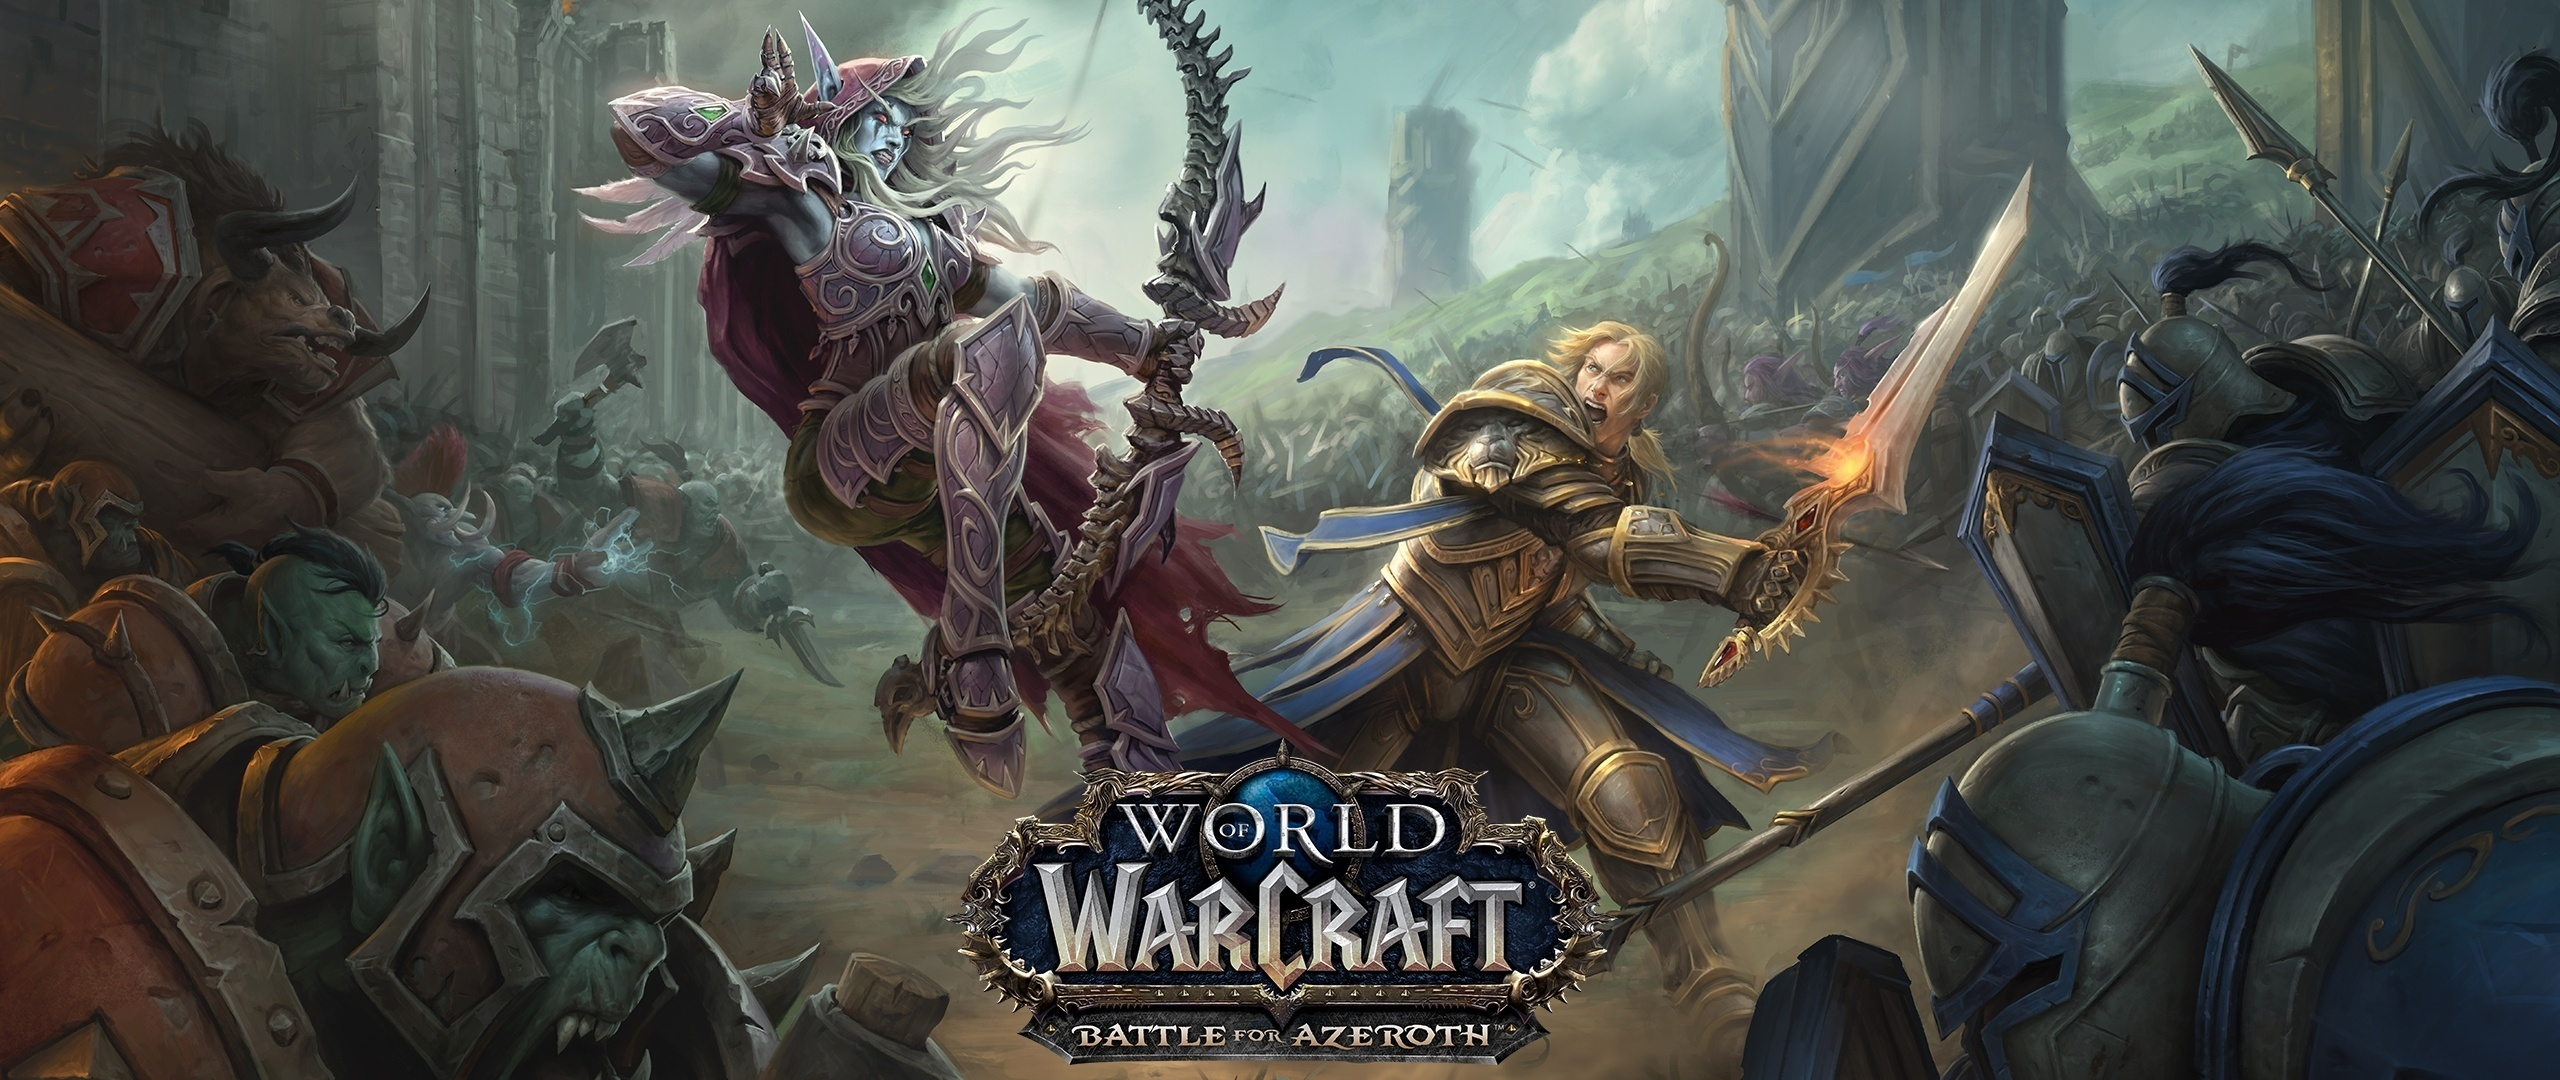 Battle for Azeroth Launch Testing on Beta This Week